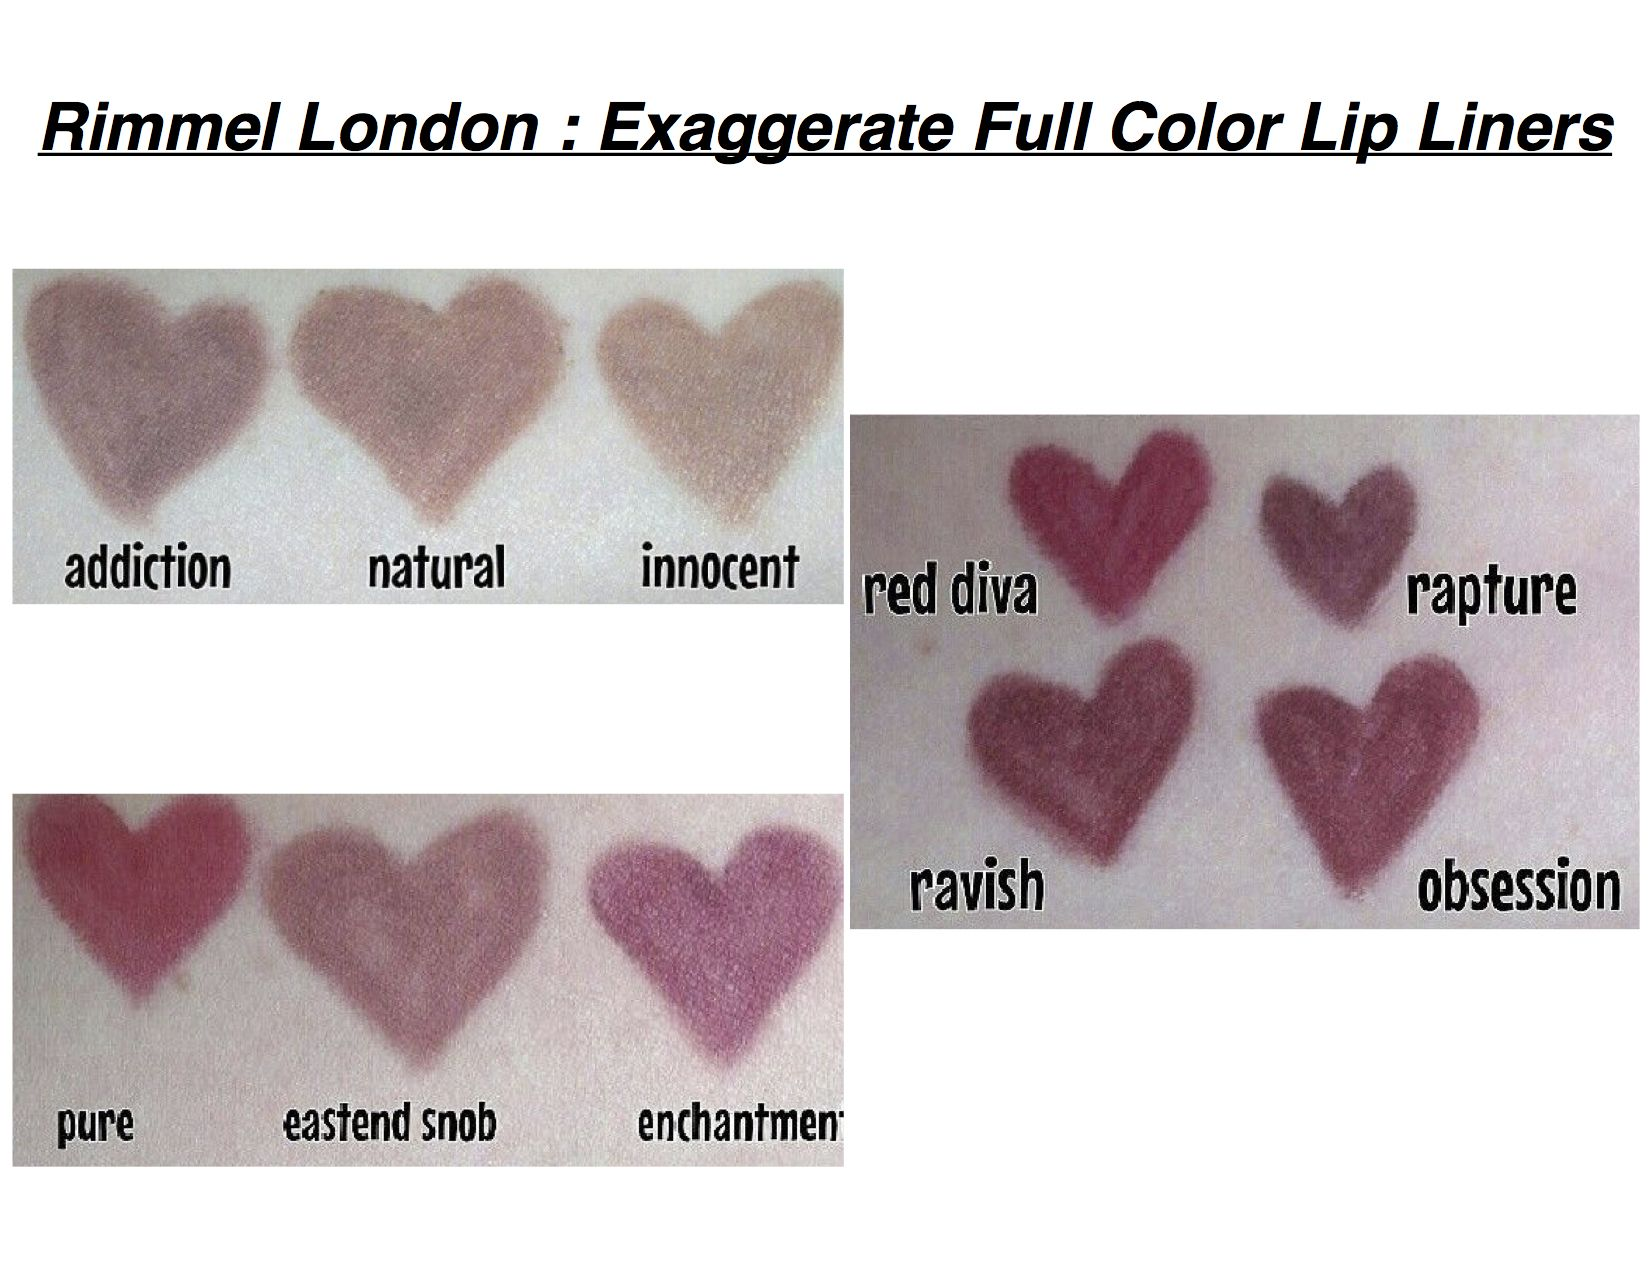 Exaggerate Lip Liner by Rimmel #20